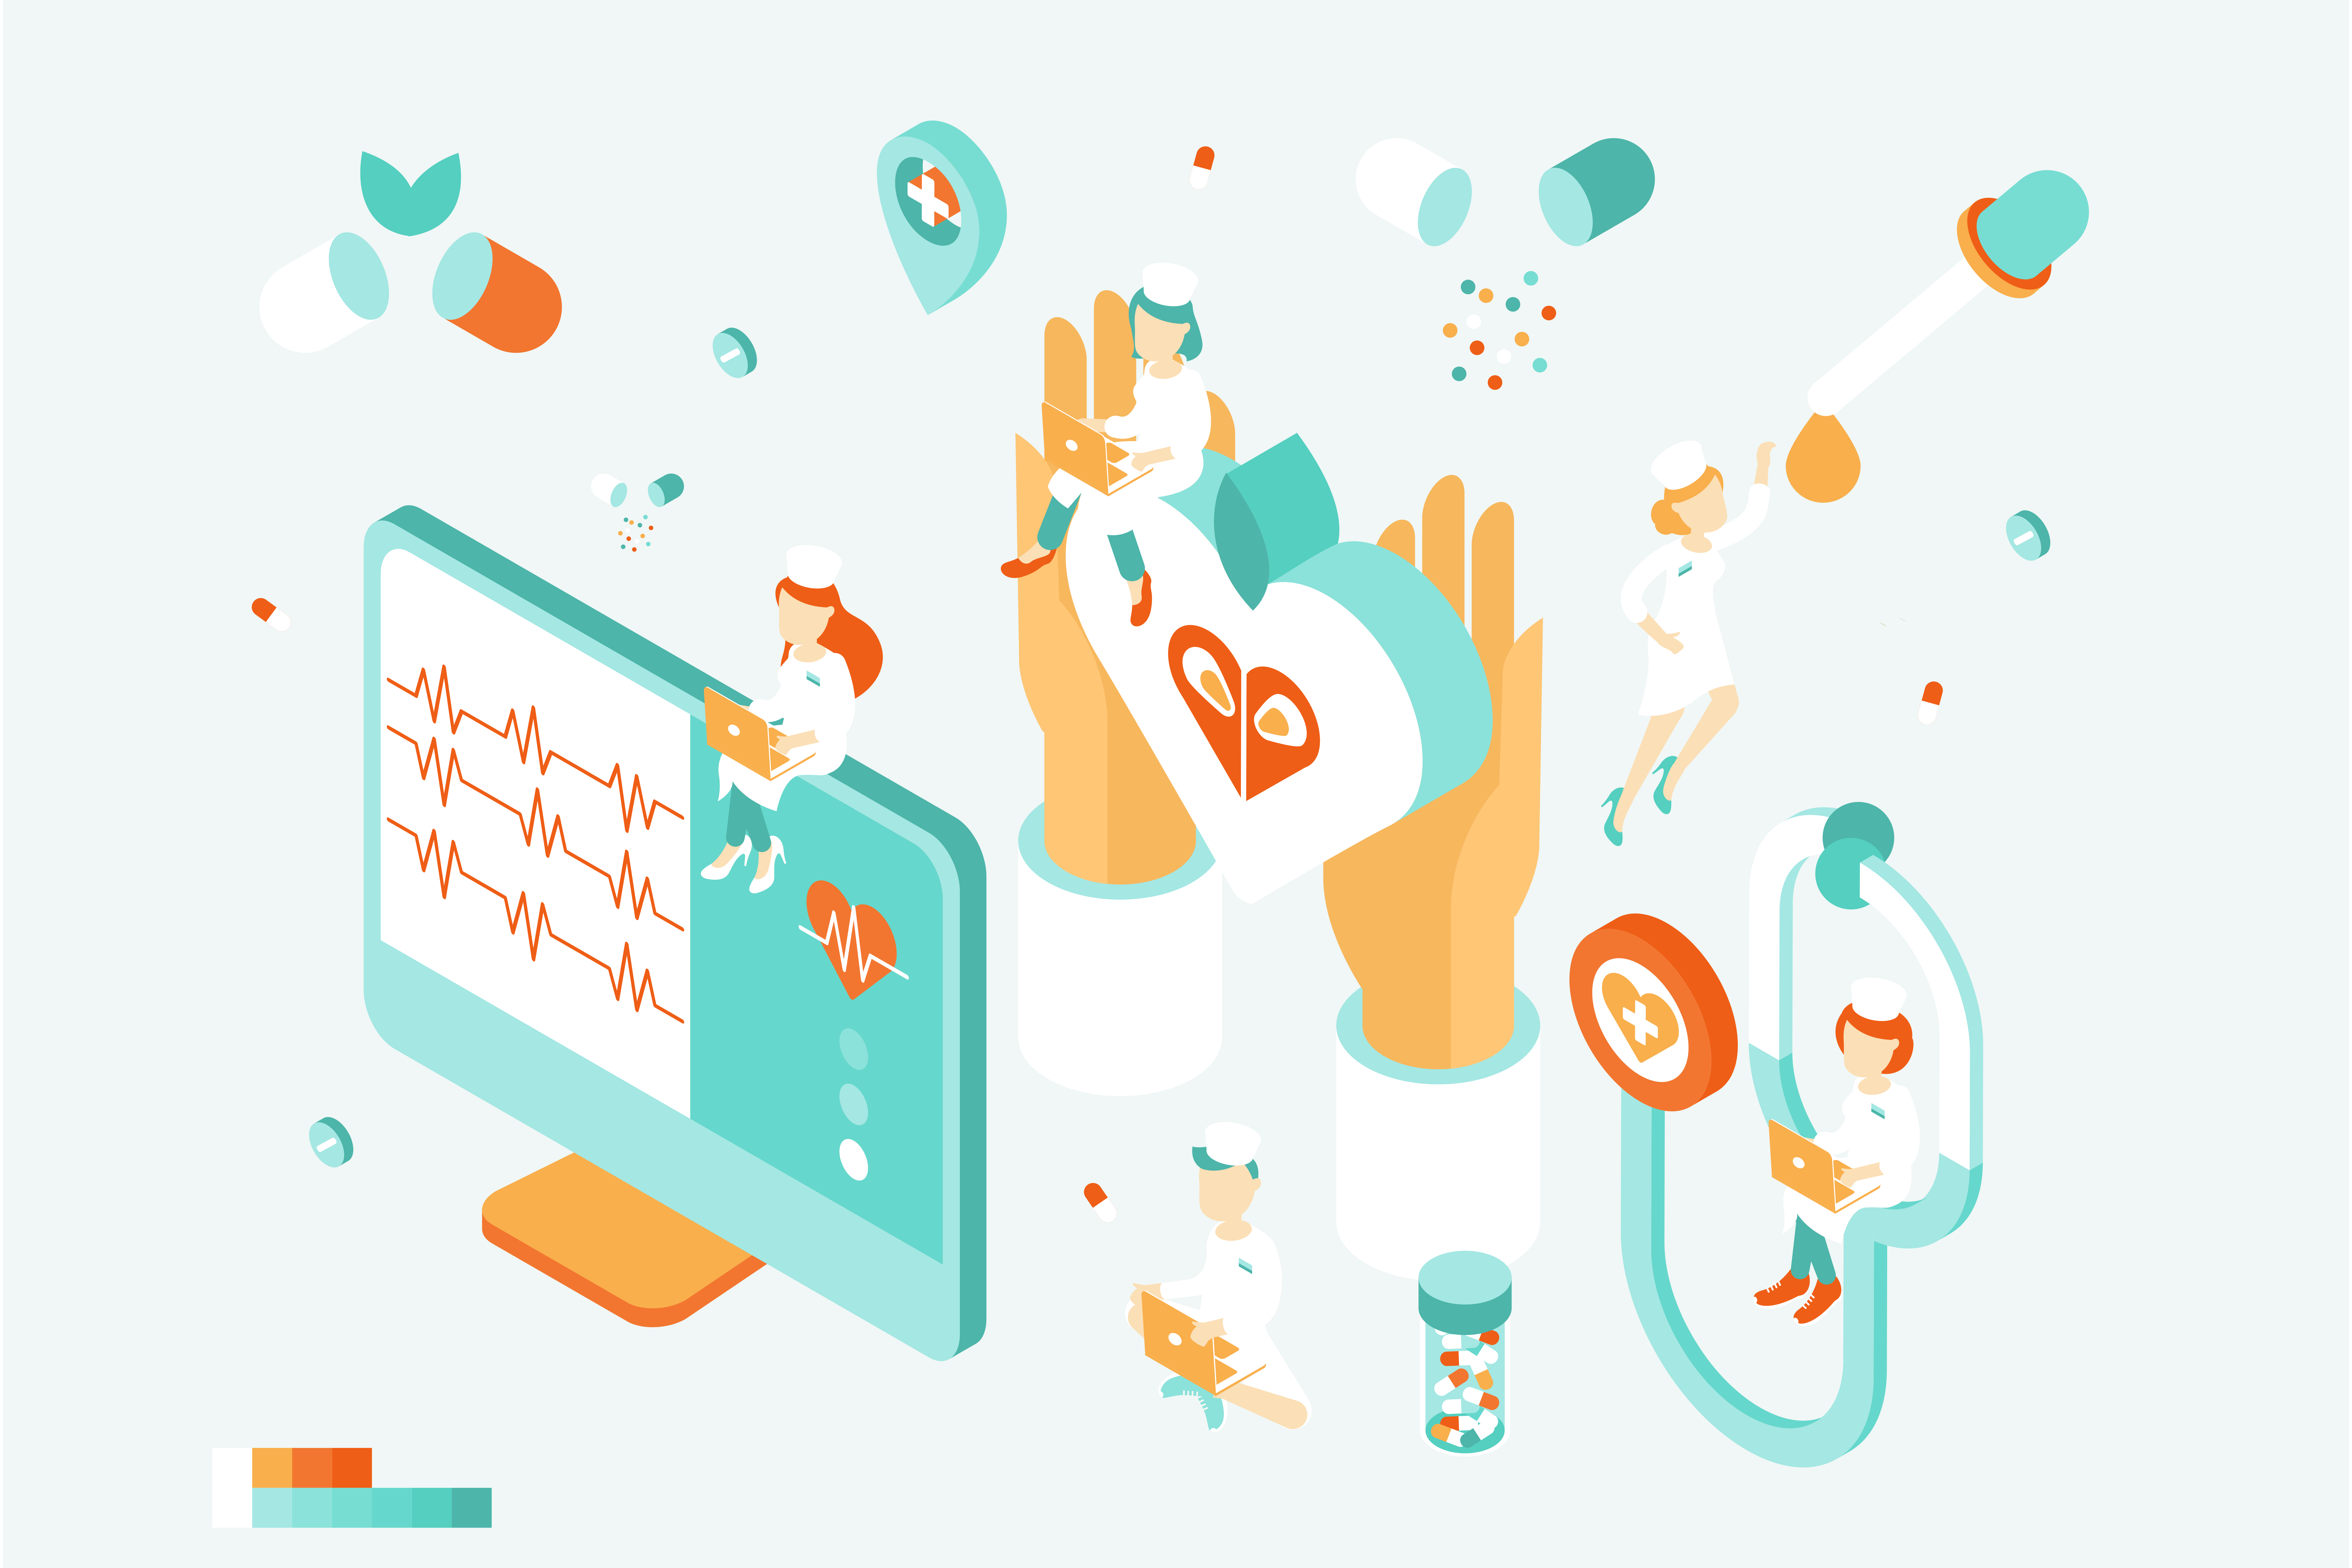 Strong Demand for Digital Health Technology in 2020 - Microswift